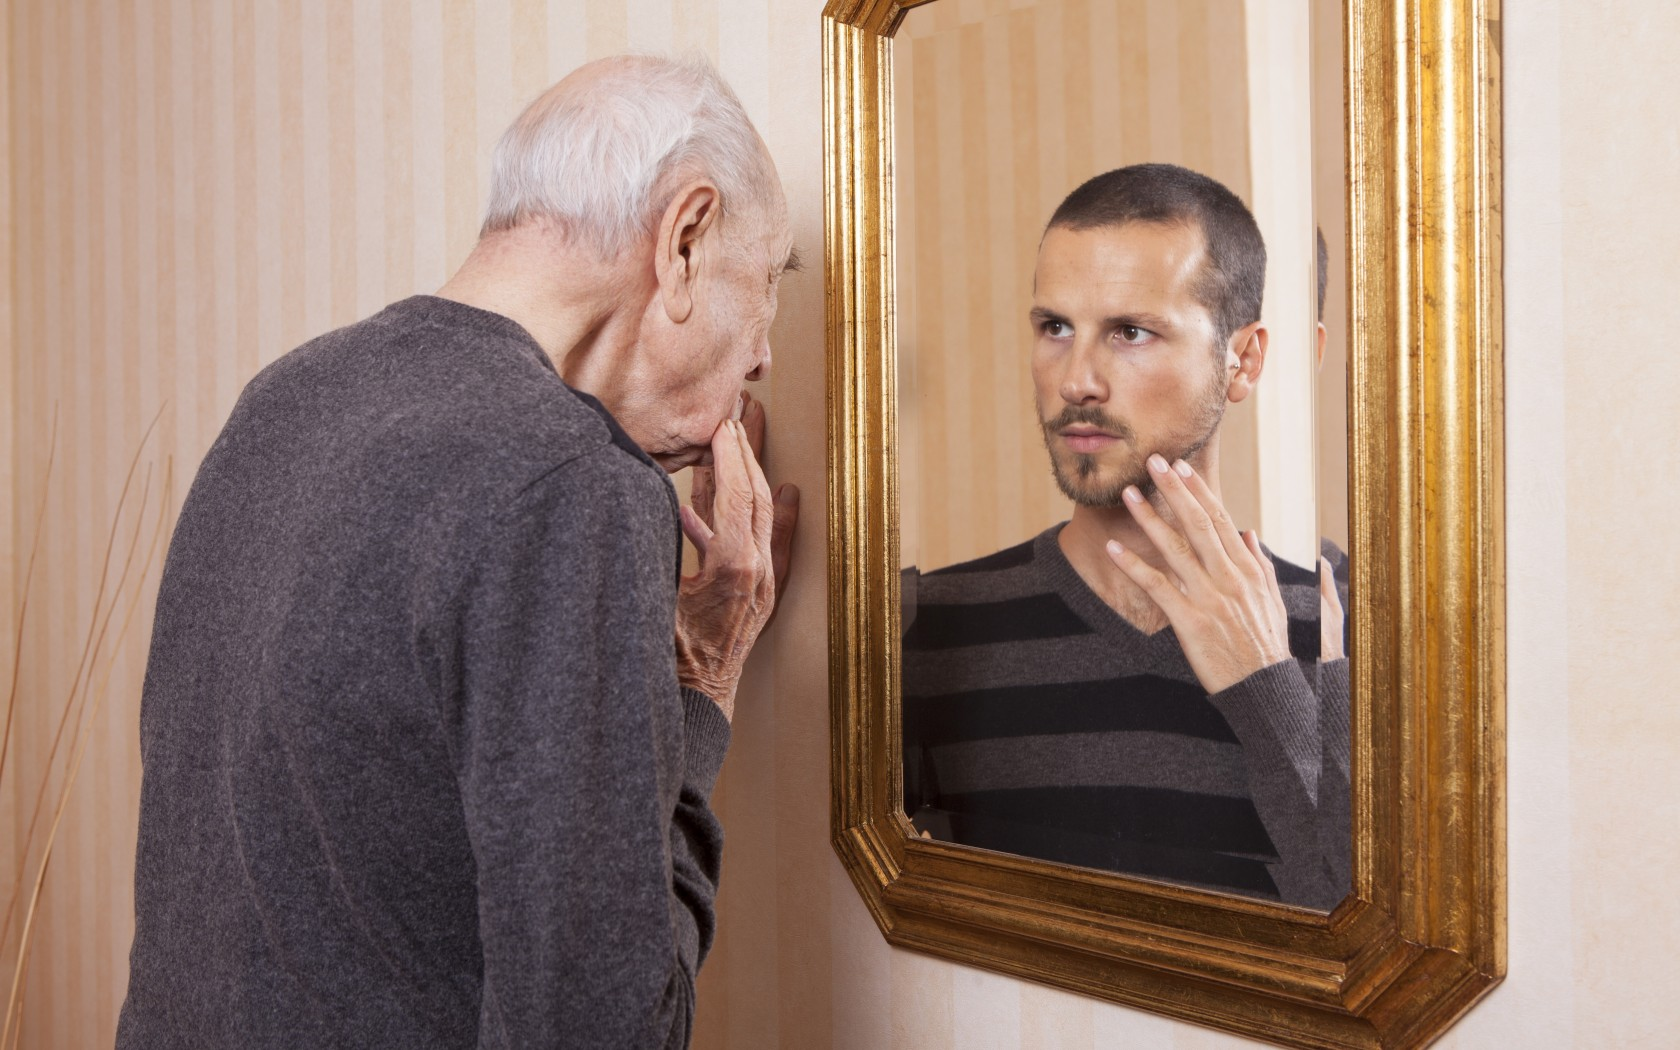 Old Man Young Man Mirror